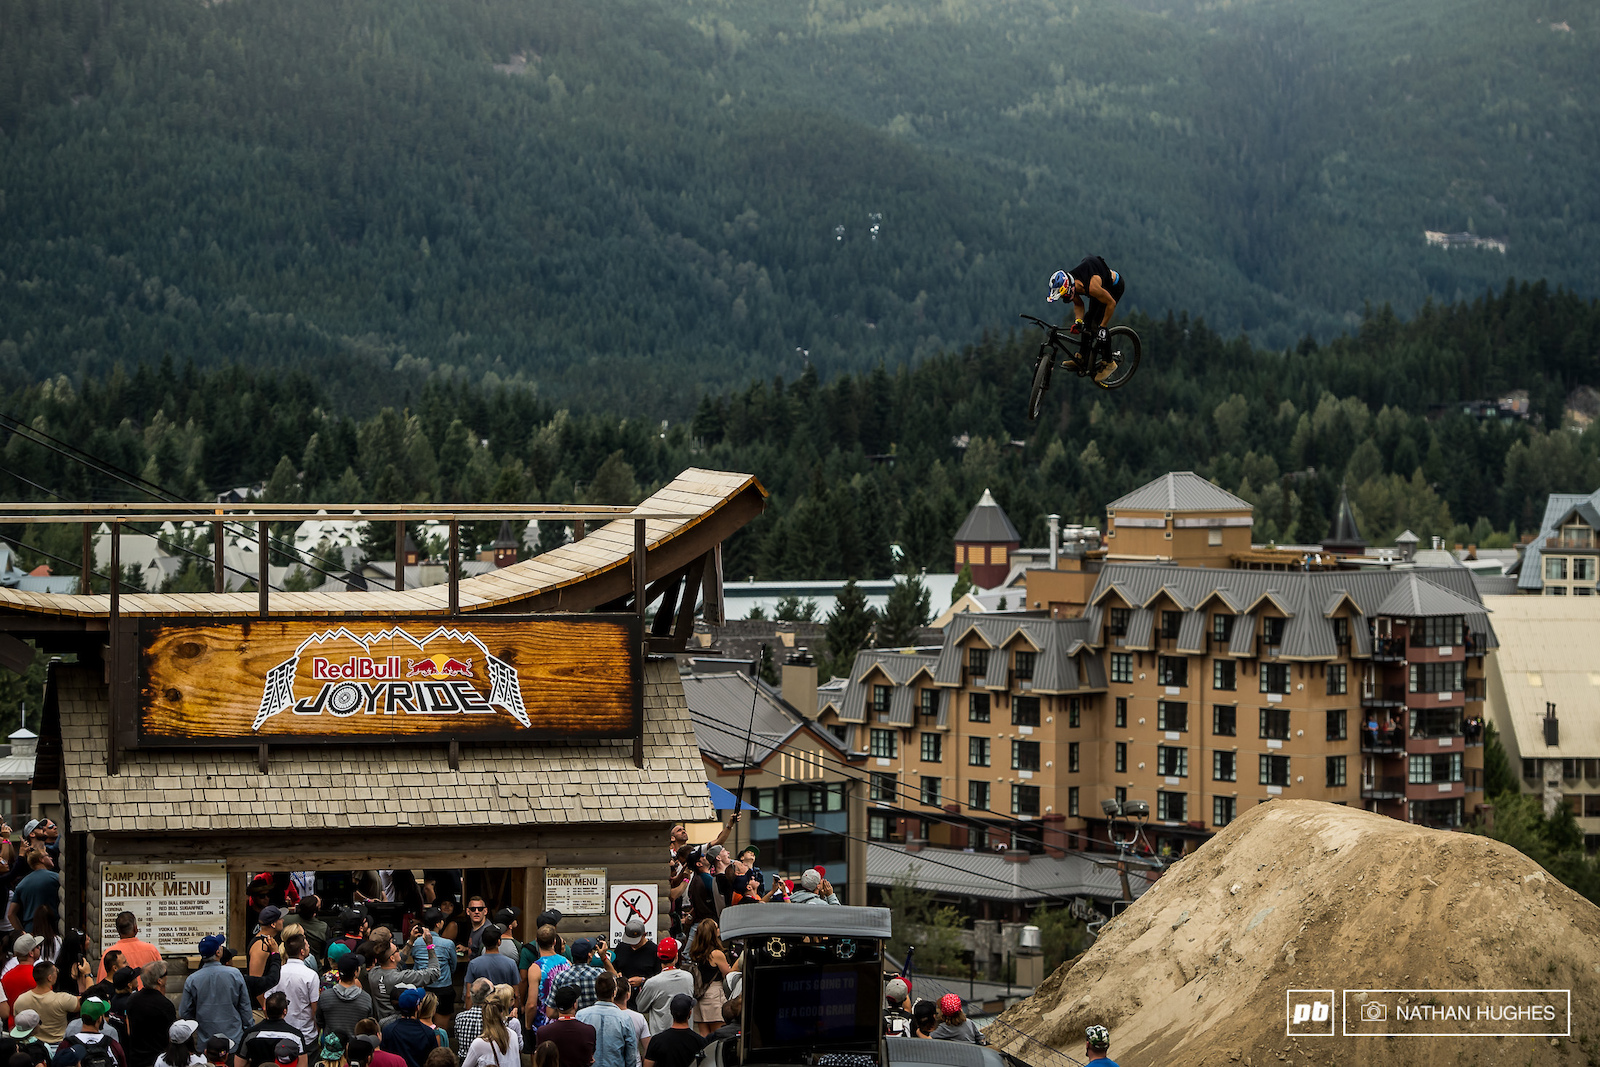 Szymon Godziek trucking off the Joyride bar.